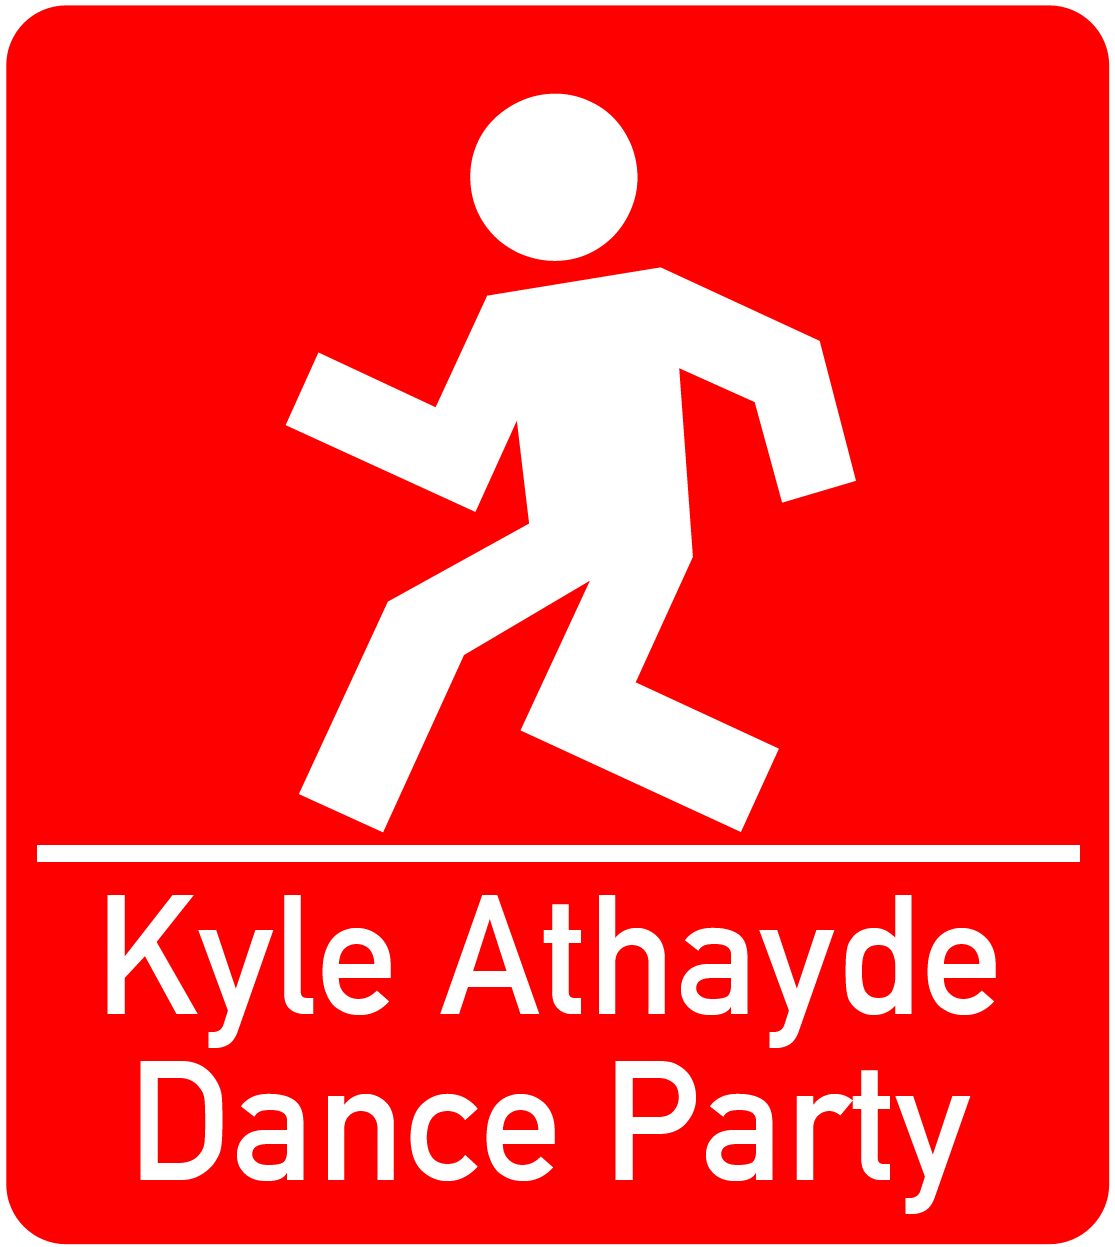 The Kyle Athayde Dance Party